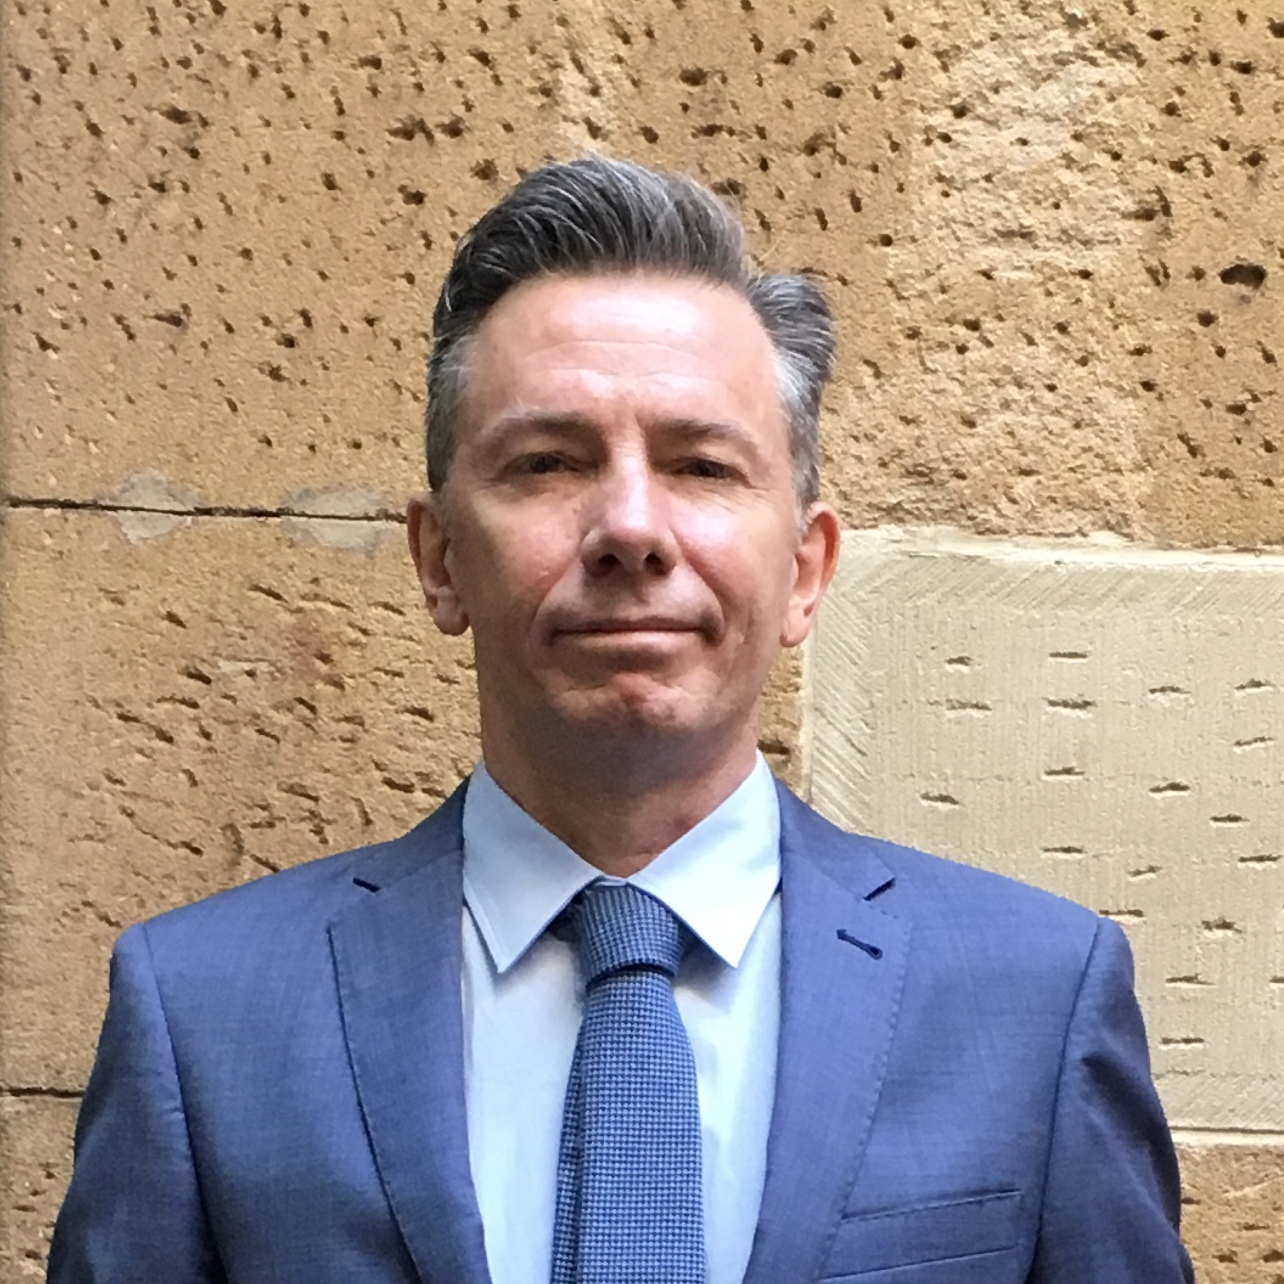 Man in blue suit in front of sandstone wall.